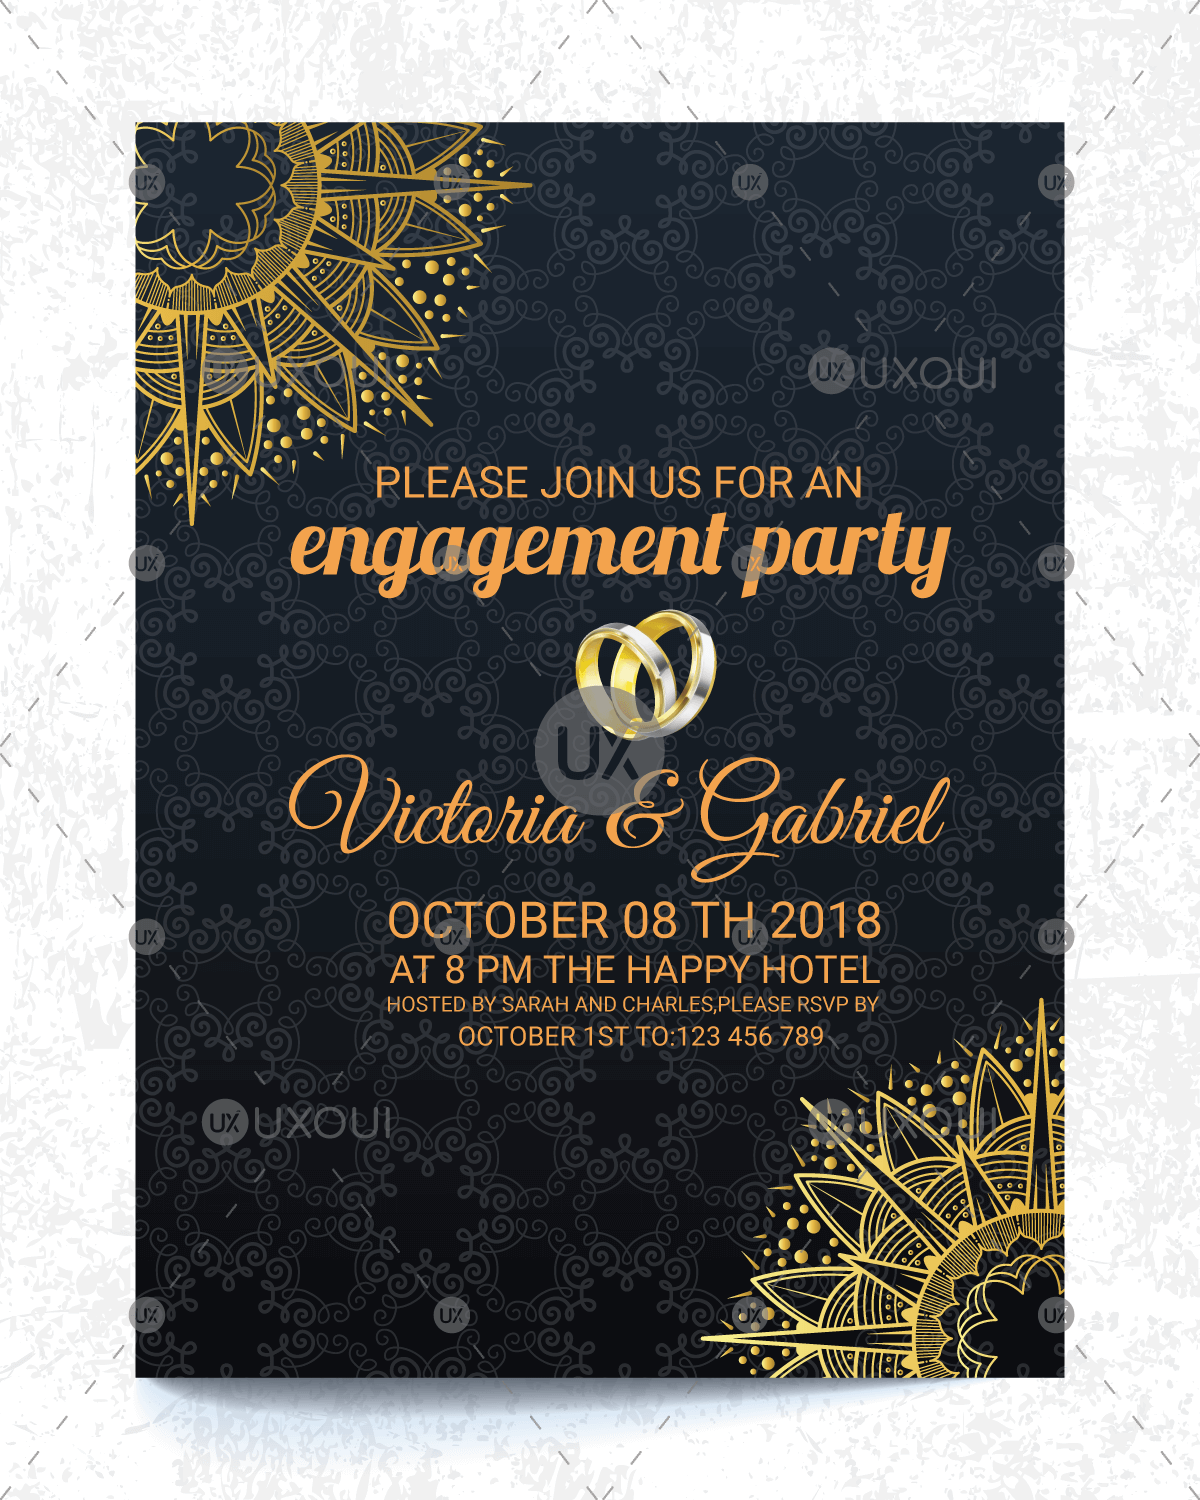 Nice wedding engagement invitation card design vector in vintage ...